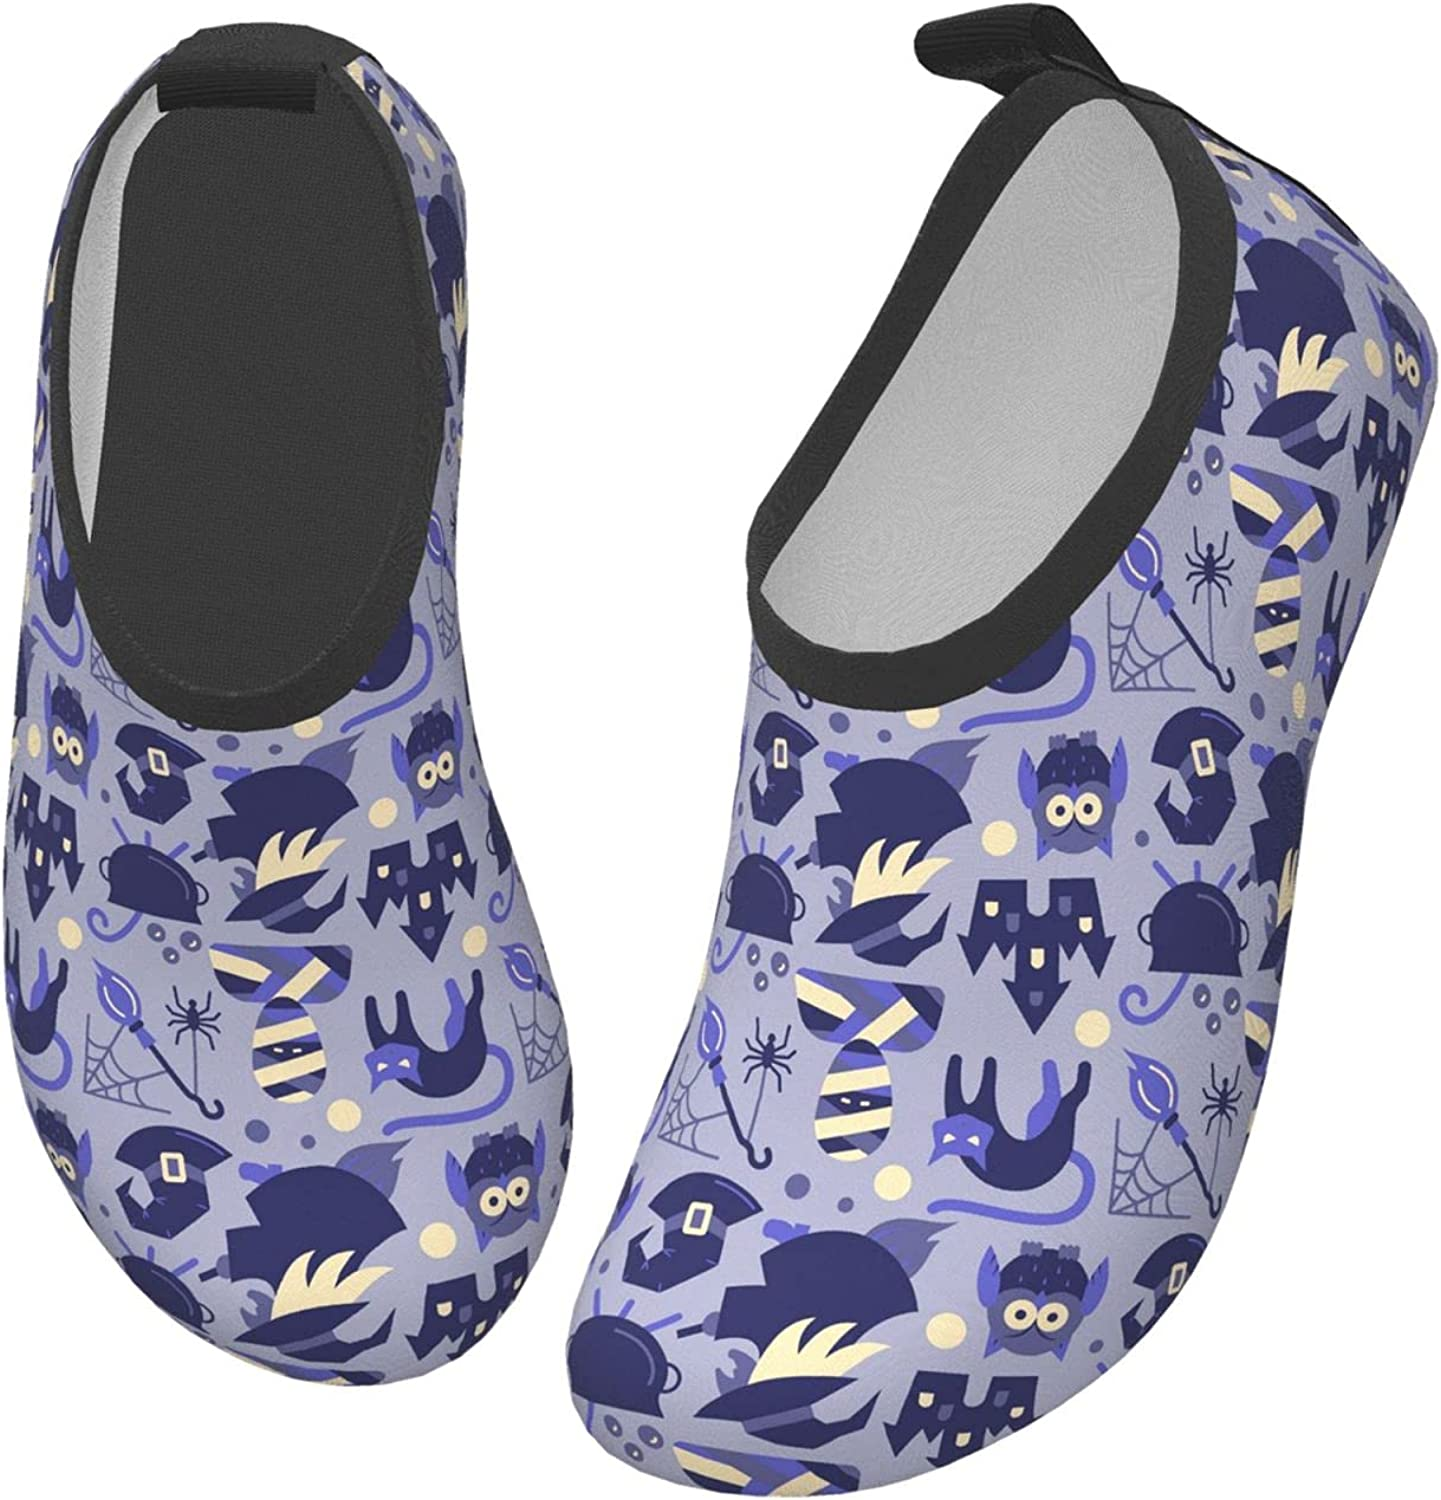 Purple Animal Autumn Owl Halloween Children's Water Shoes Feel Barefoot for Swimming Beach Boating Surfing Yoga